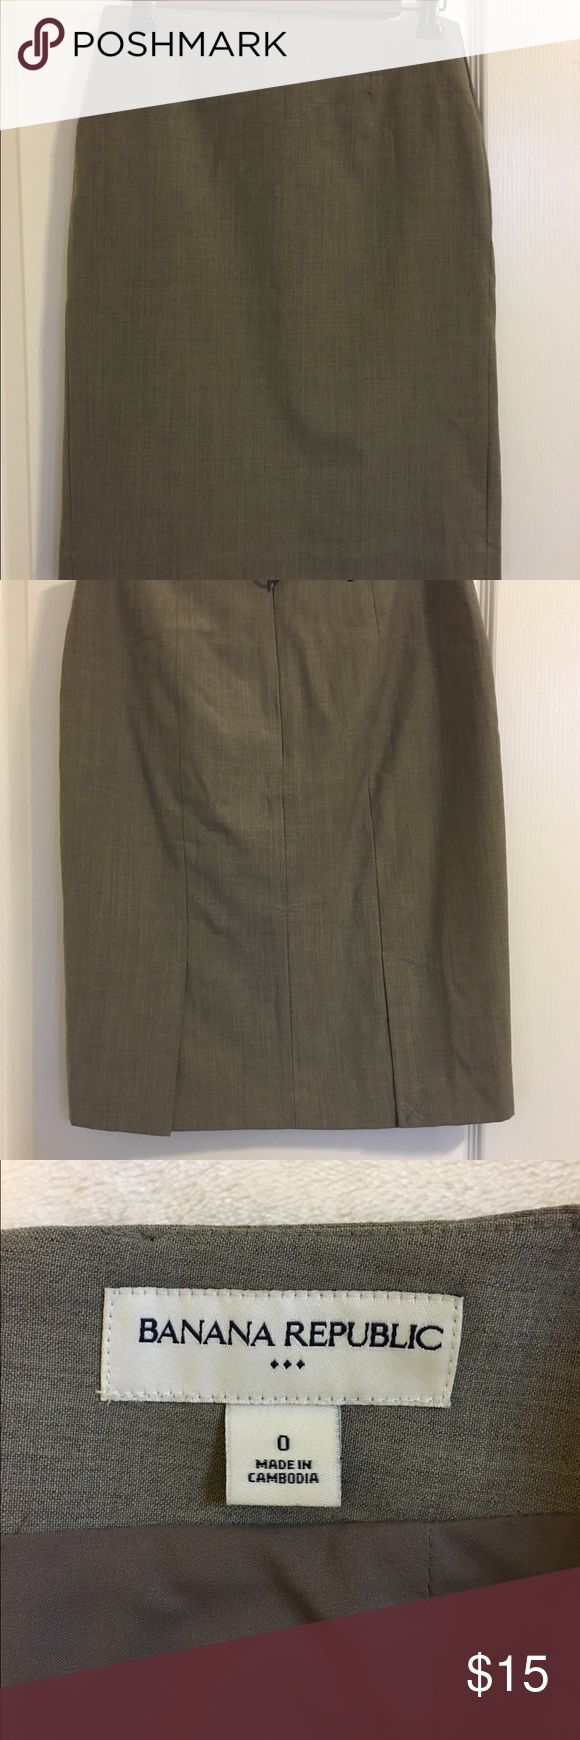 Banana Republic toupe skirt Elegant Banana Republic toupe/light brown pencil skirt. Perfect for a day at the office! Great condition! 58% wool/ 38% polyester/ 4% spandex. Banana Republic Skirts Pencil